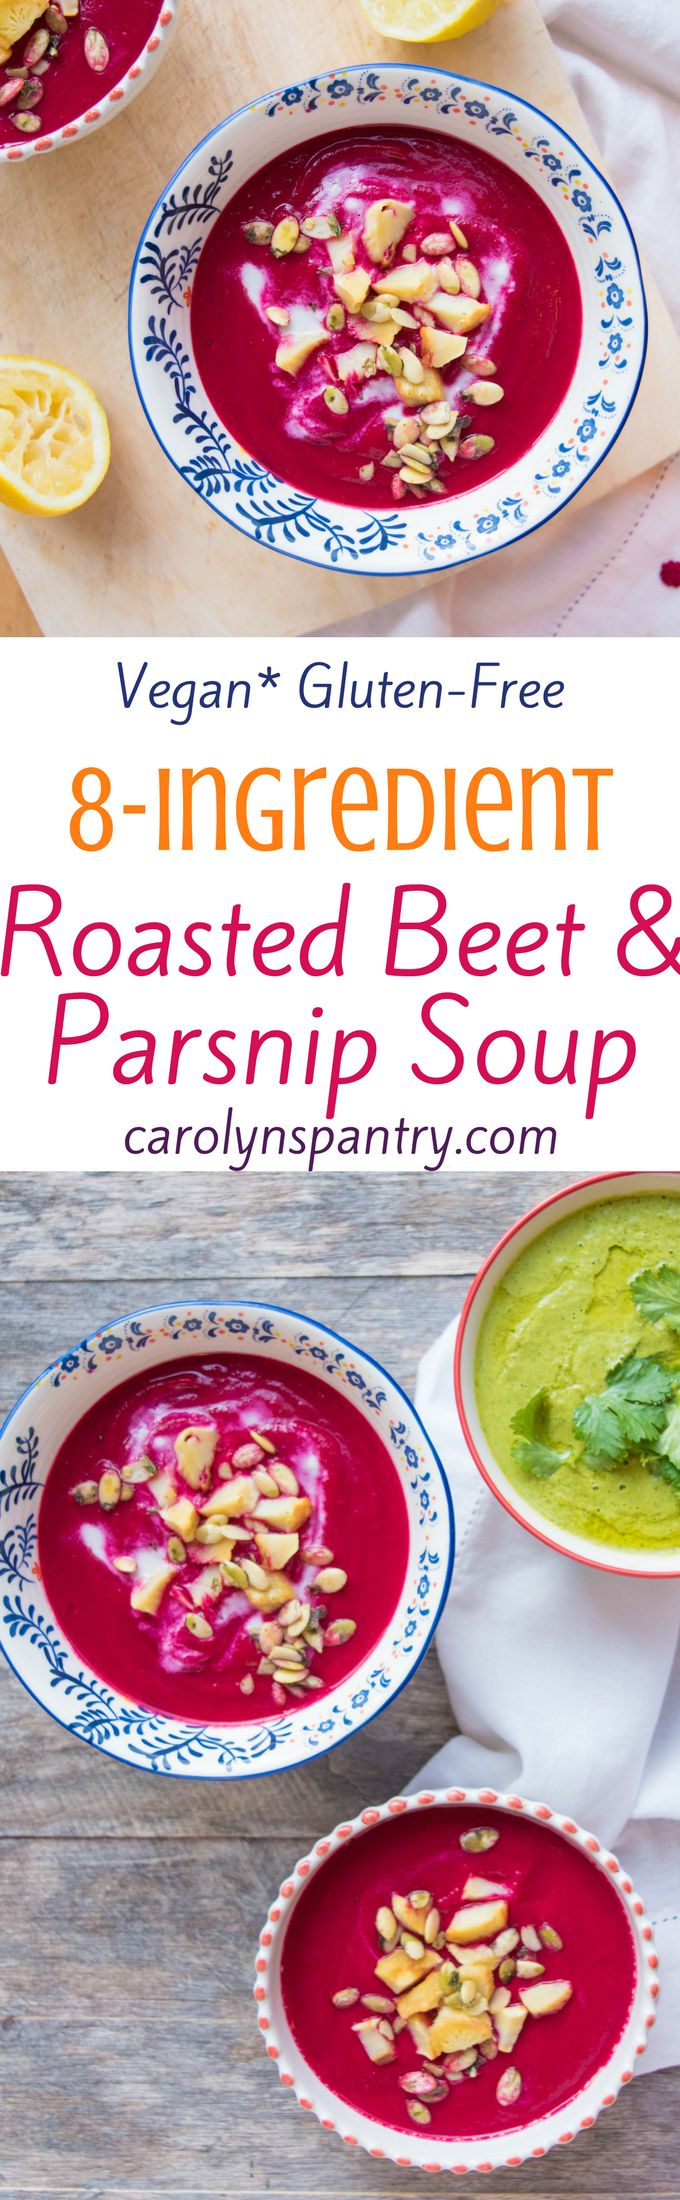 Are you in the mood to make something beautiful and delicious in under 30 minutes and with just 9 ingredients tonight? Heck yes you are! As if the simplicity of this scrumptious Roasted Beet & Parsnip Soup wasn't enough to convince you it's worthy of your kitchen, its health benefits will absolutely do the trick. This soup of the gods is 100% plant-based and gluten-free and comes packed with nutrients from the beets and parsnips that form its base.